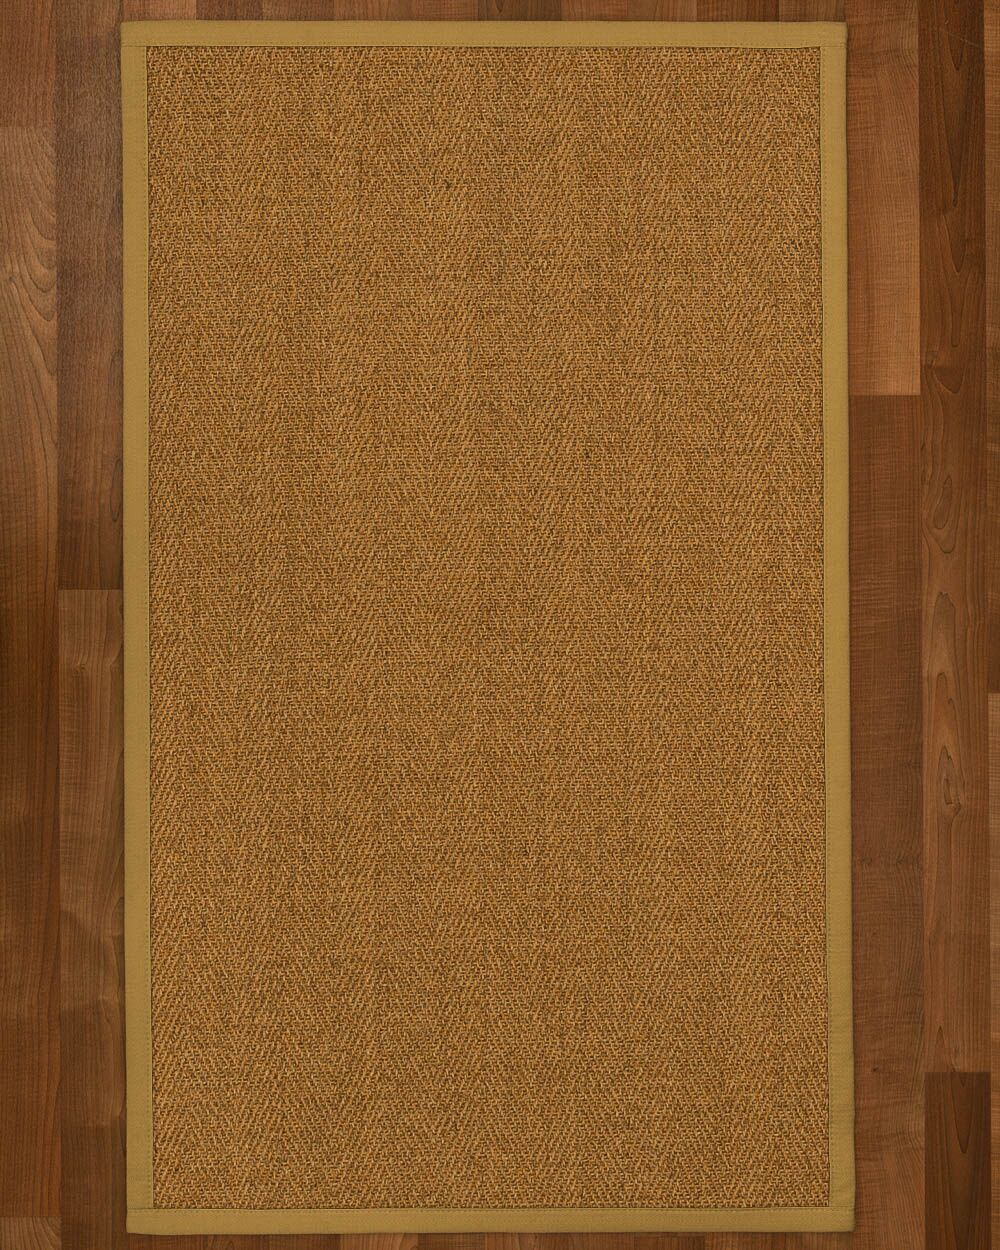 Asmund Border Hand-Woven Brown Area Rug Rug Size: Rectangle 12' x 15', Rug Pad Included: Yes